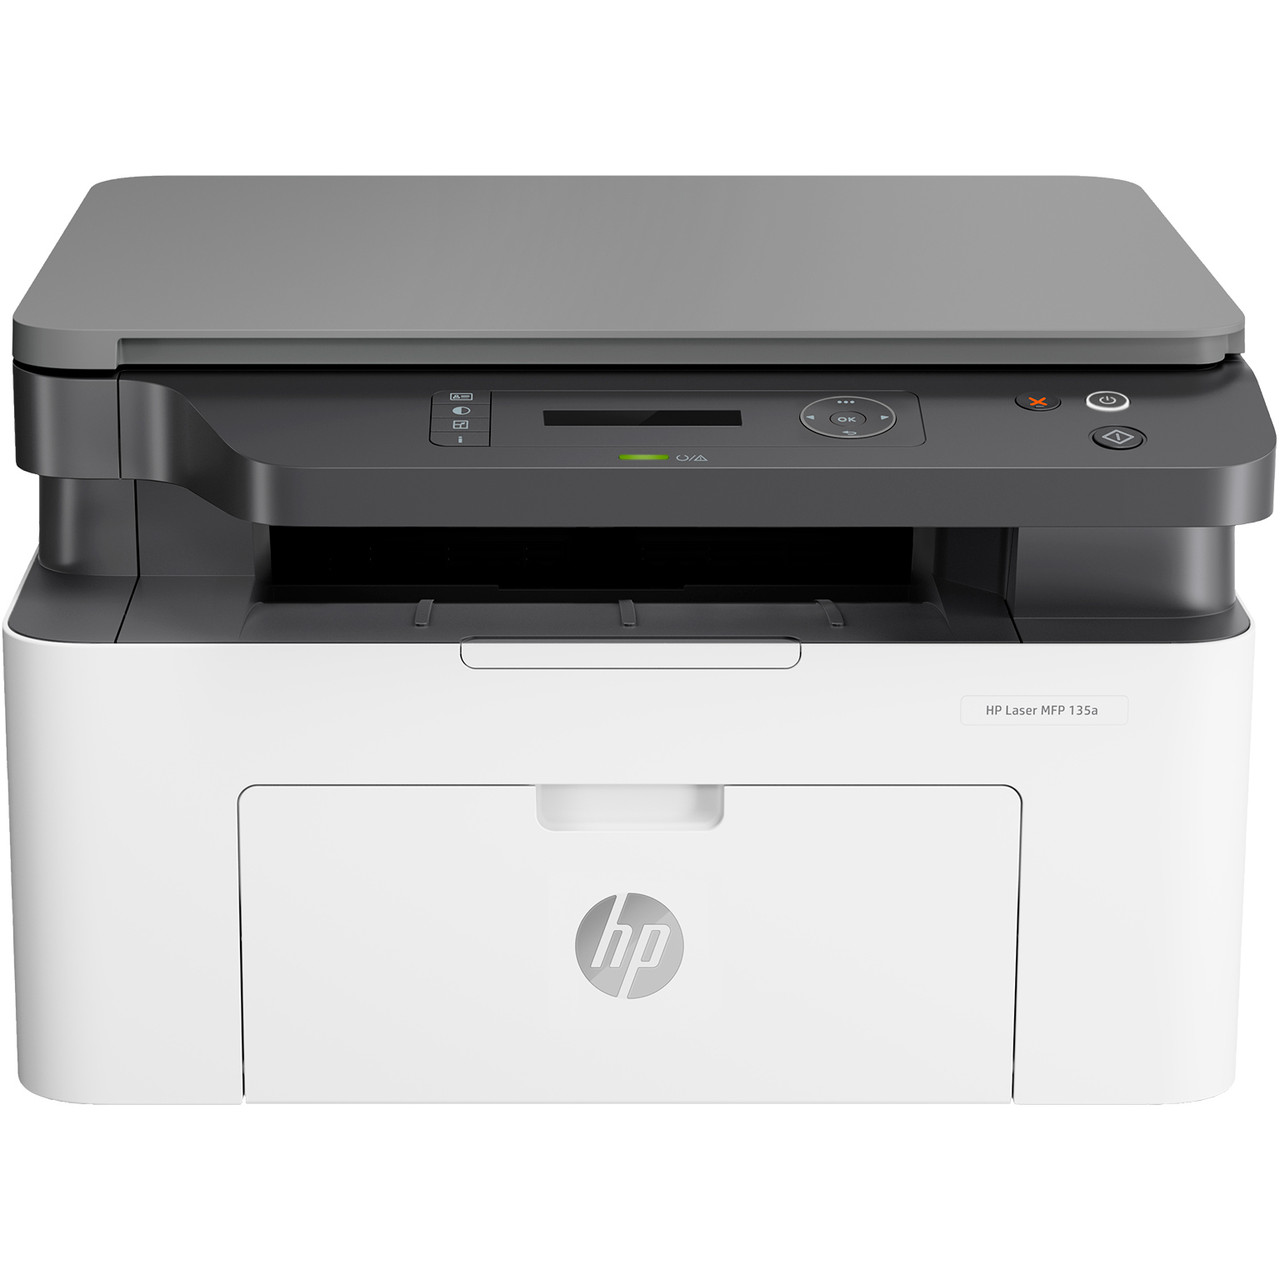 МФУ HP 4ZB82A Laser MFP 135a Printer, A4, печать 1200x1200dpi, копир 600x600dpi, сканер 600x600dpi, Hi-Speed U